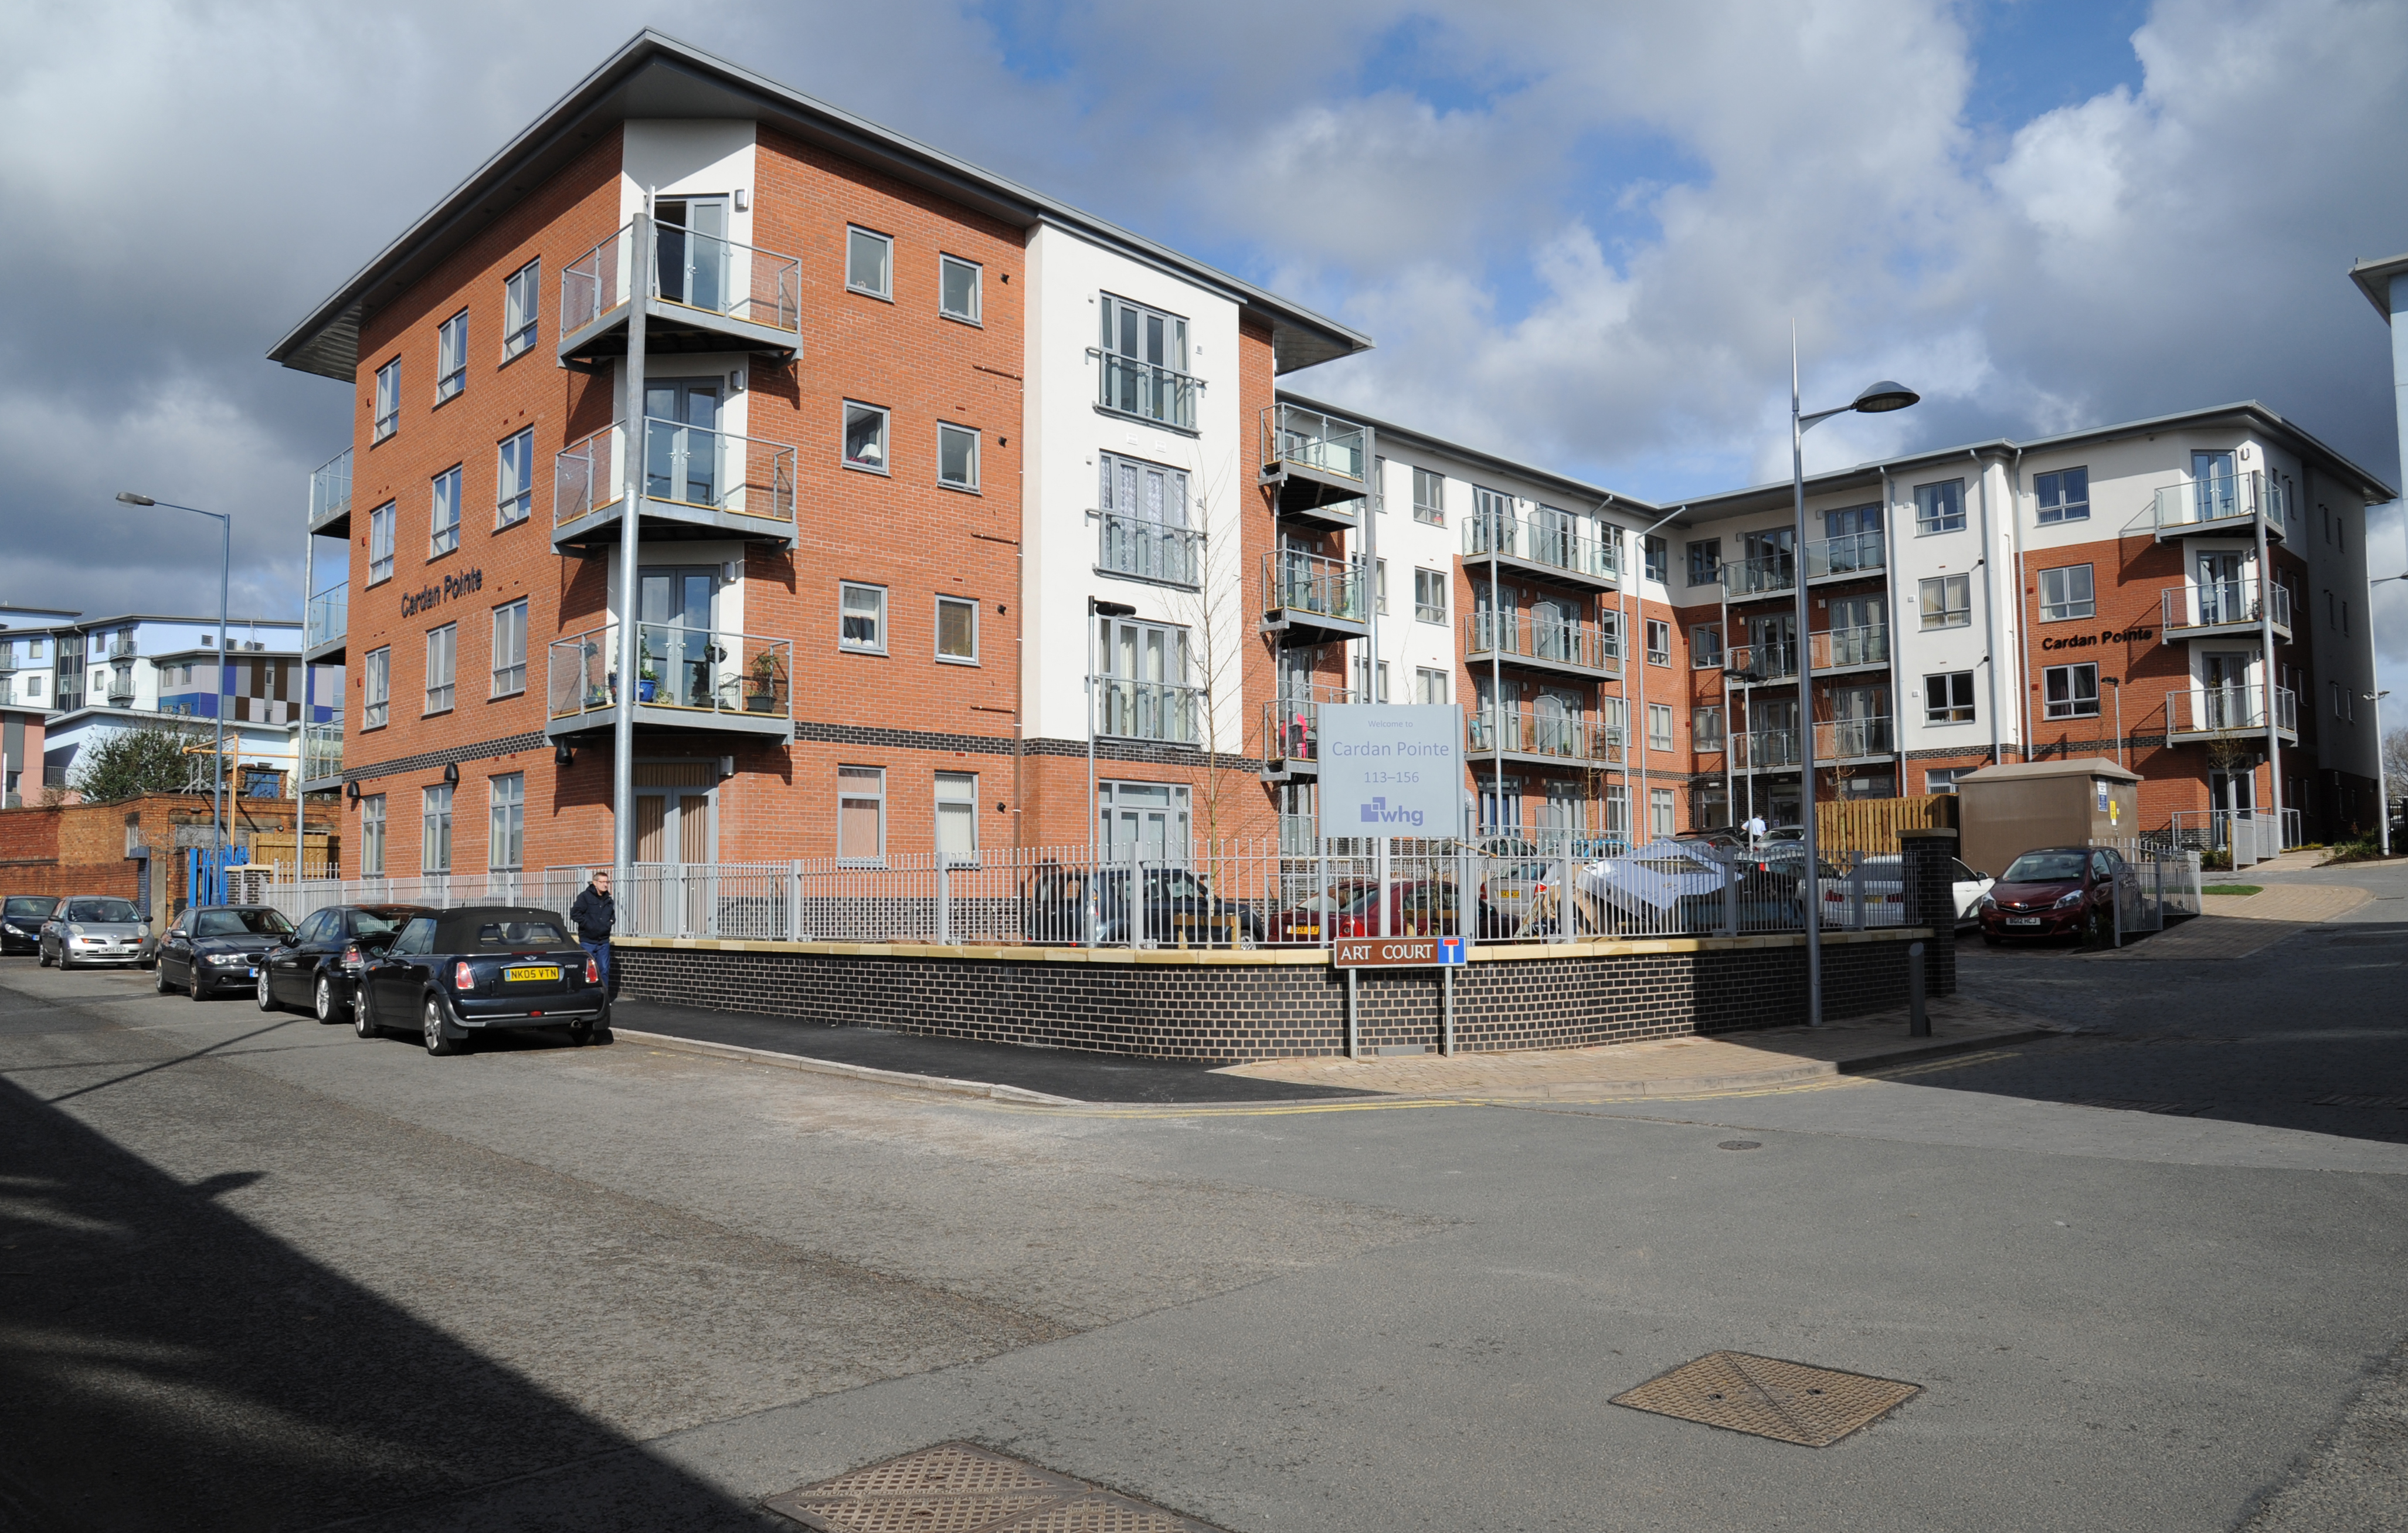 Charles Street walsall over 55s apartments cardan pointe